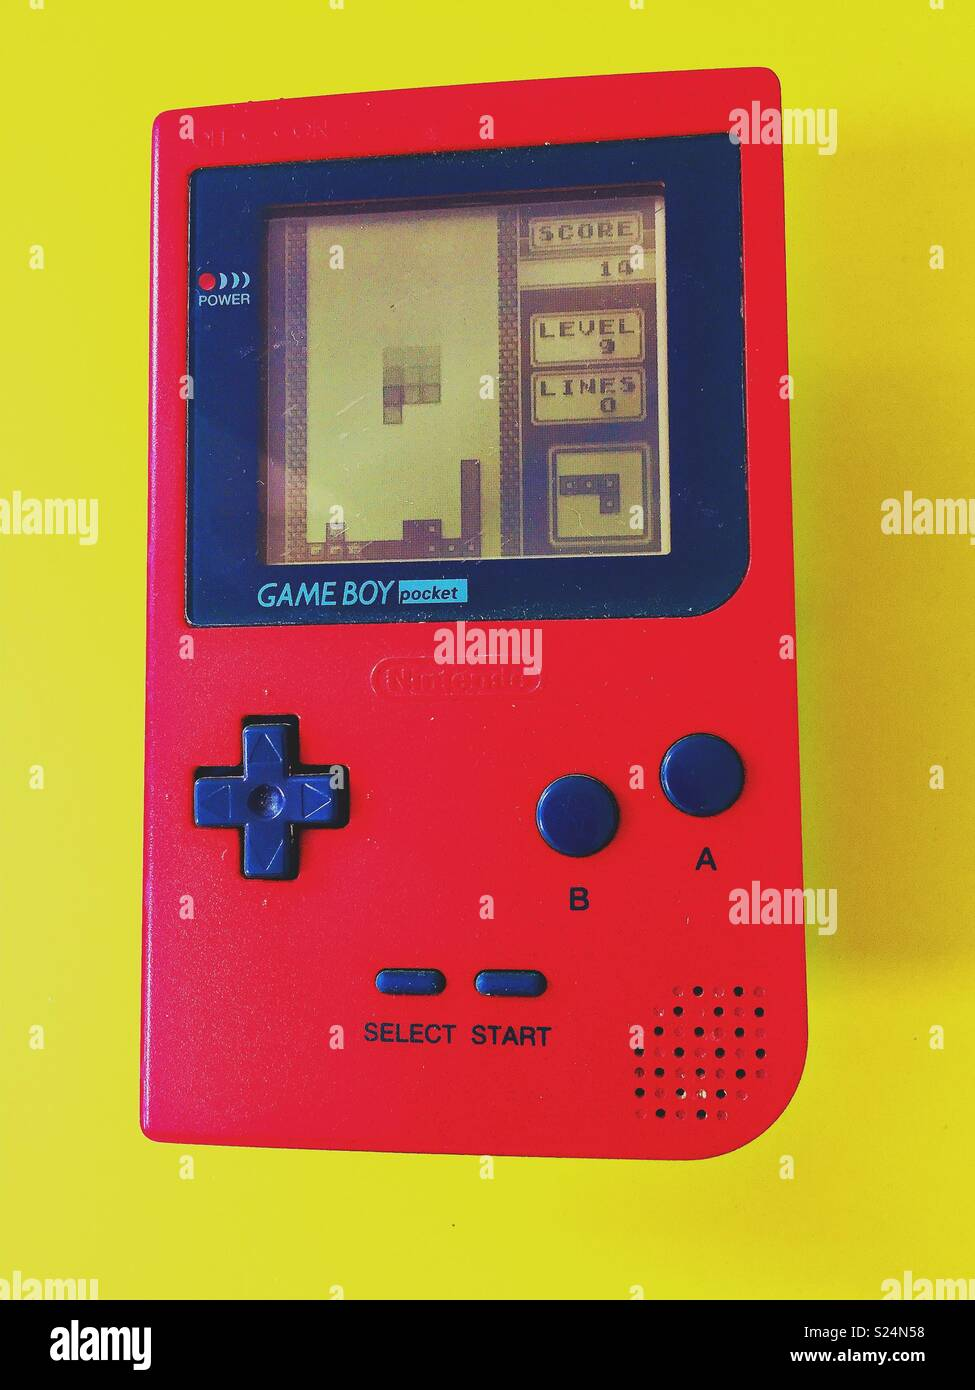 Red Game Boy Pocket against bright yellow background with Tetris